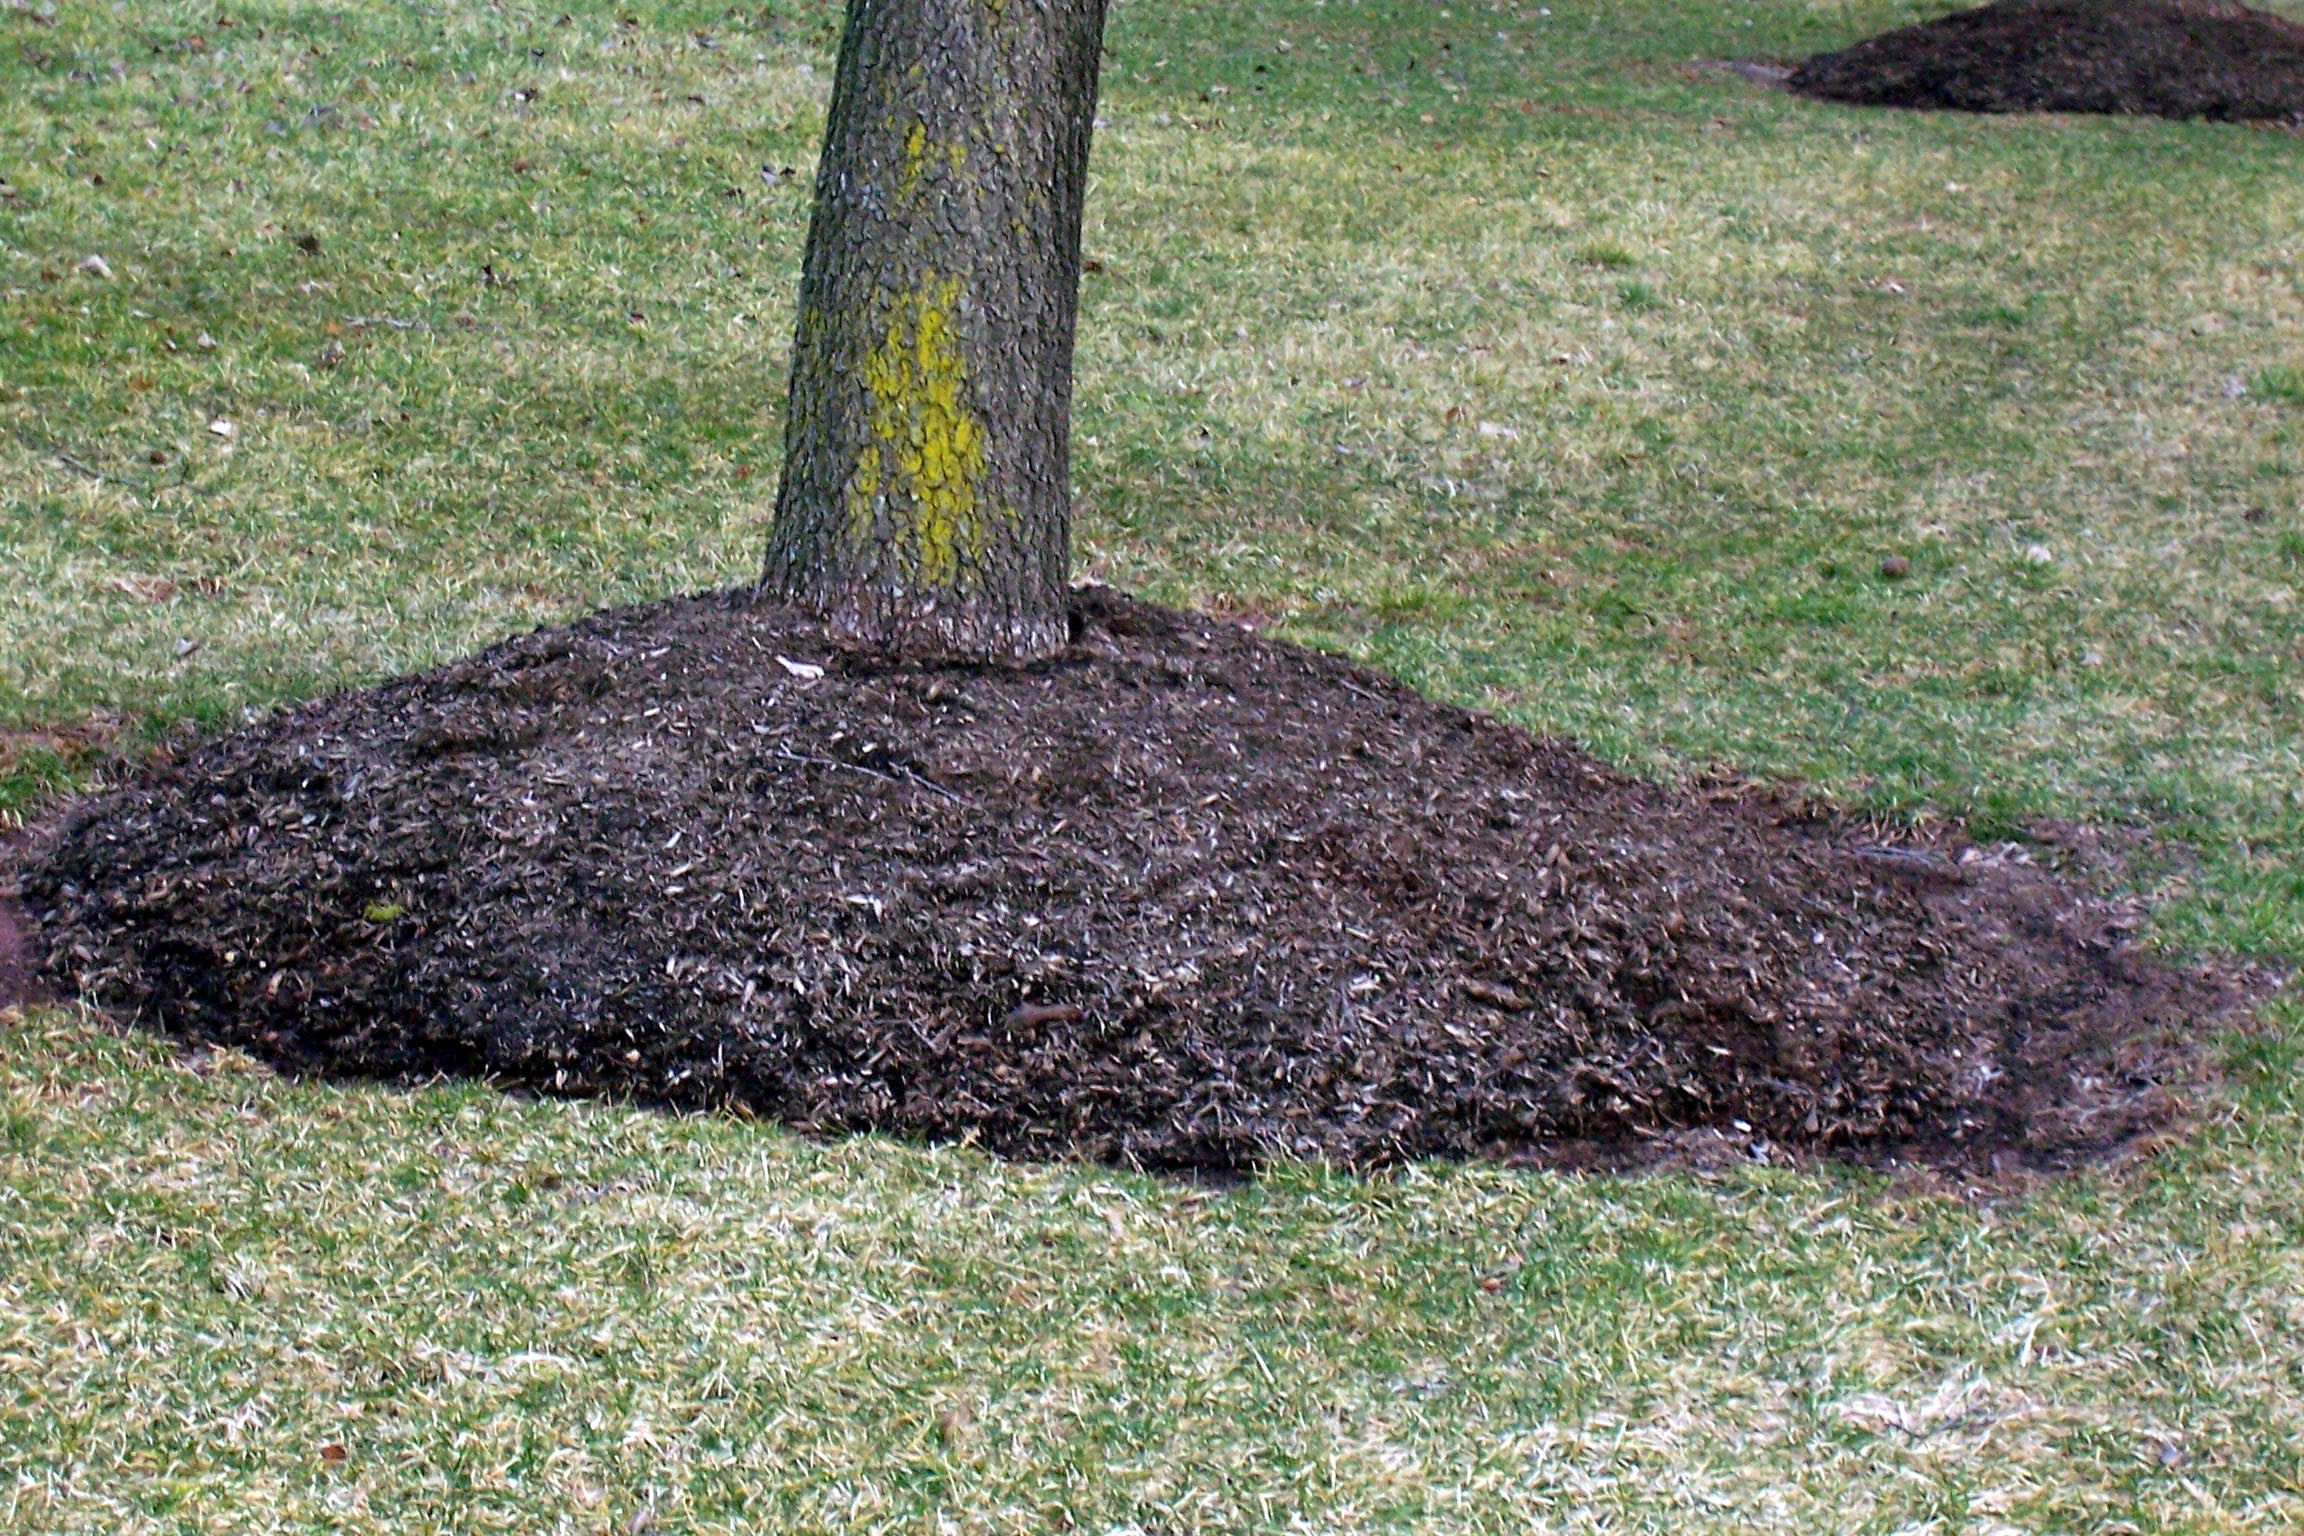 Don't over-mulch either! You can suffocate your tree or shrub's root system. Two inches of mulch should be plenty.